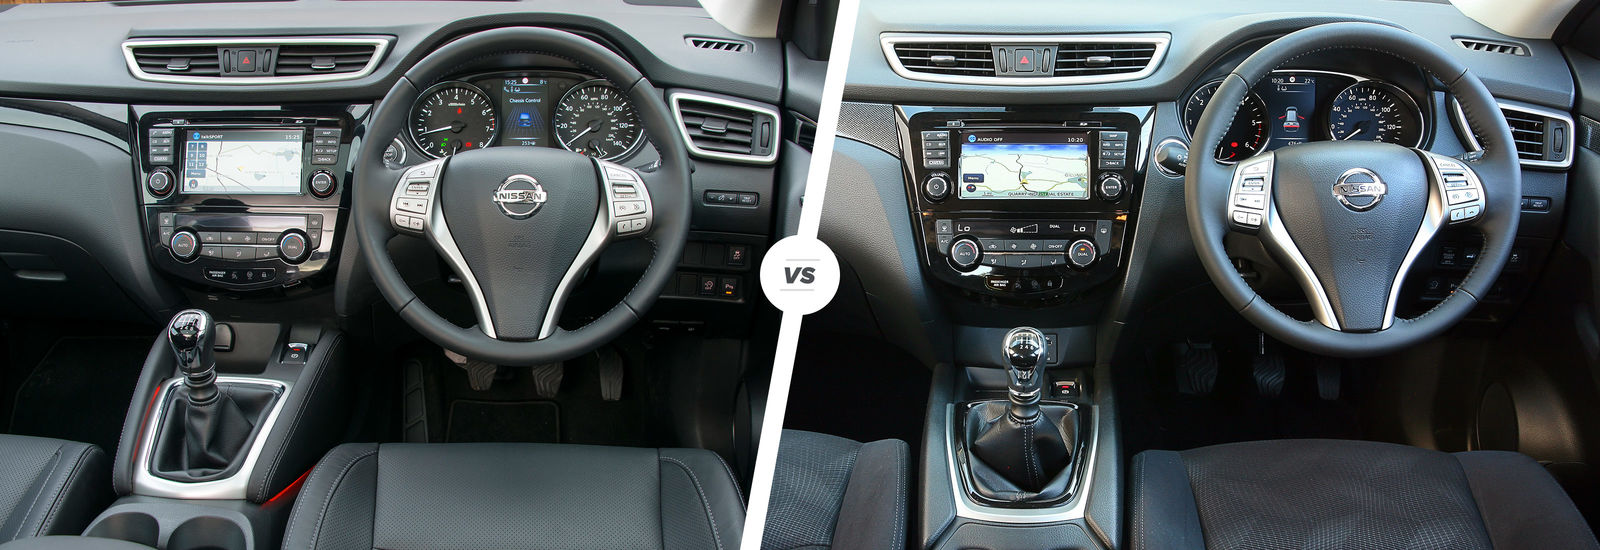 All Types harga new xtrail : Nissan Qashqai vs X-Trail – style or size?   carwow